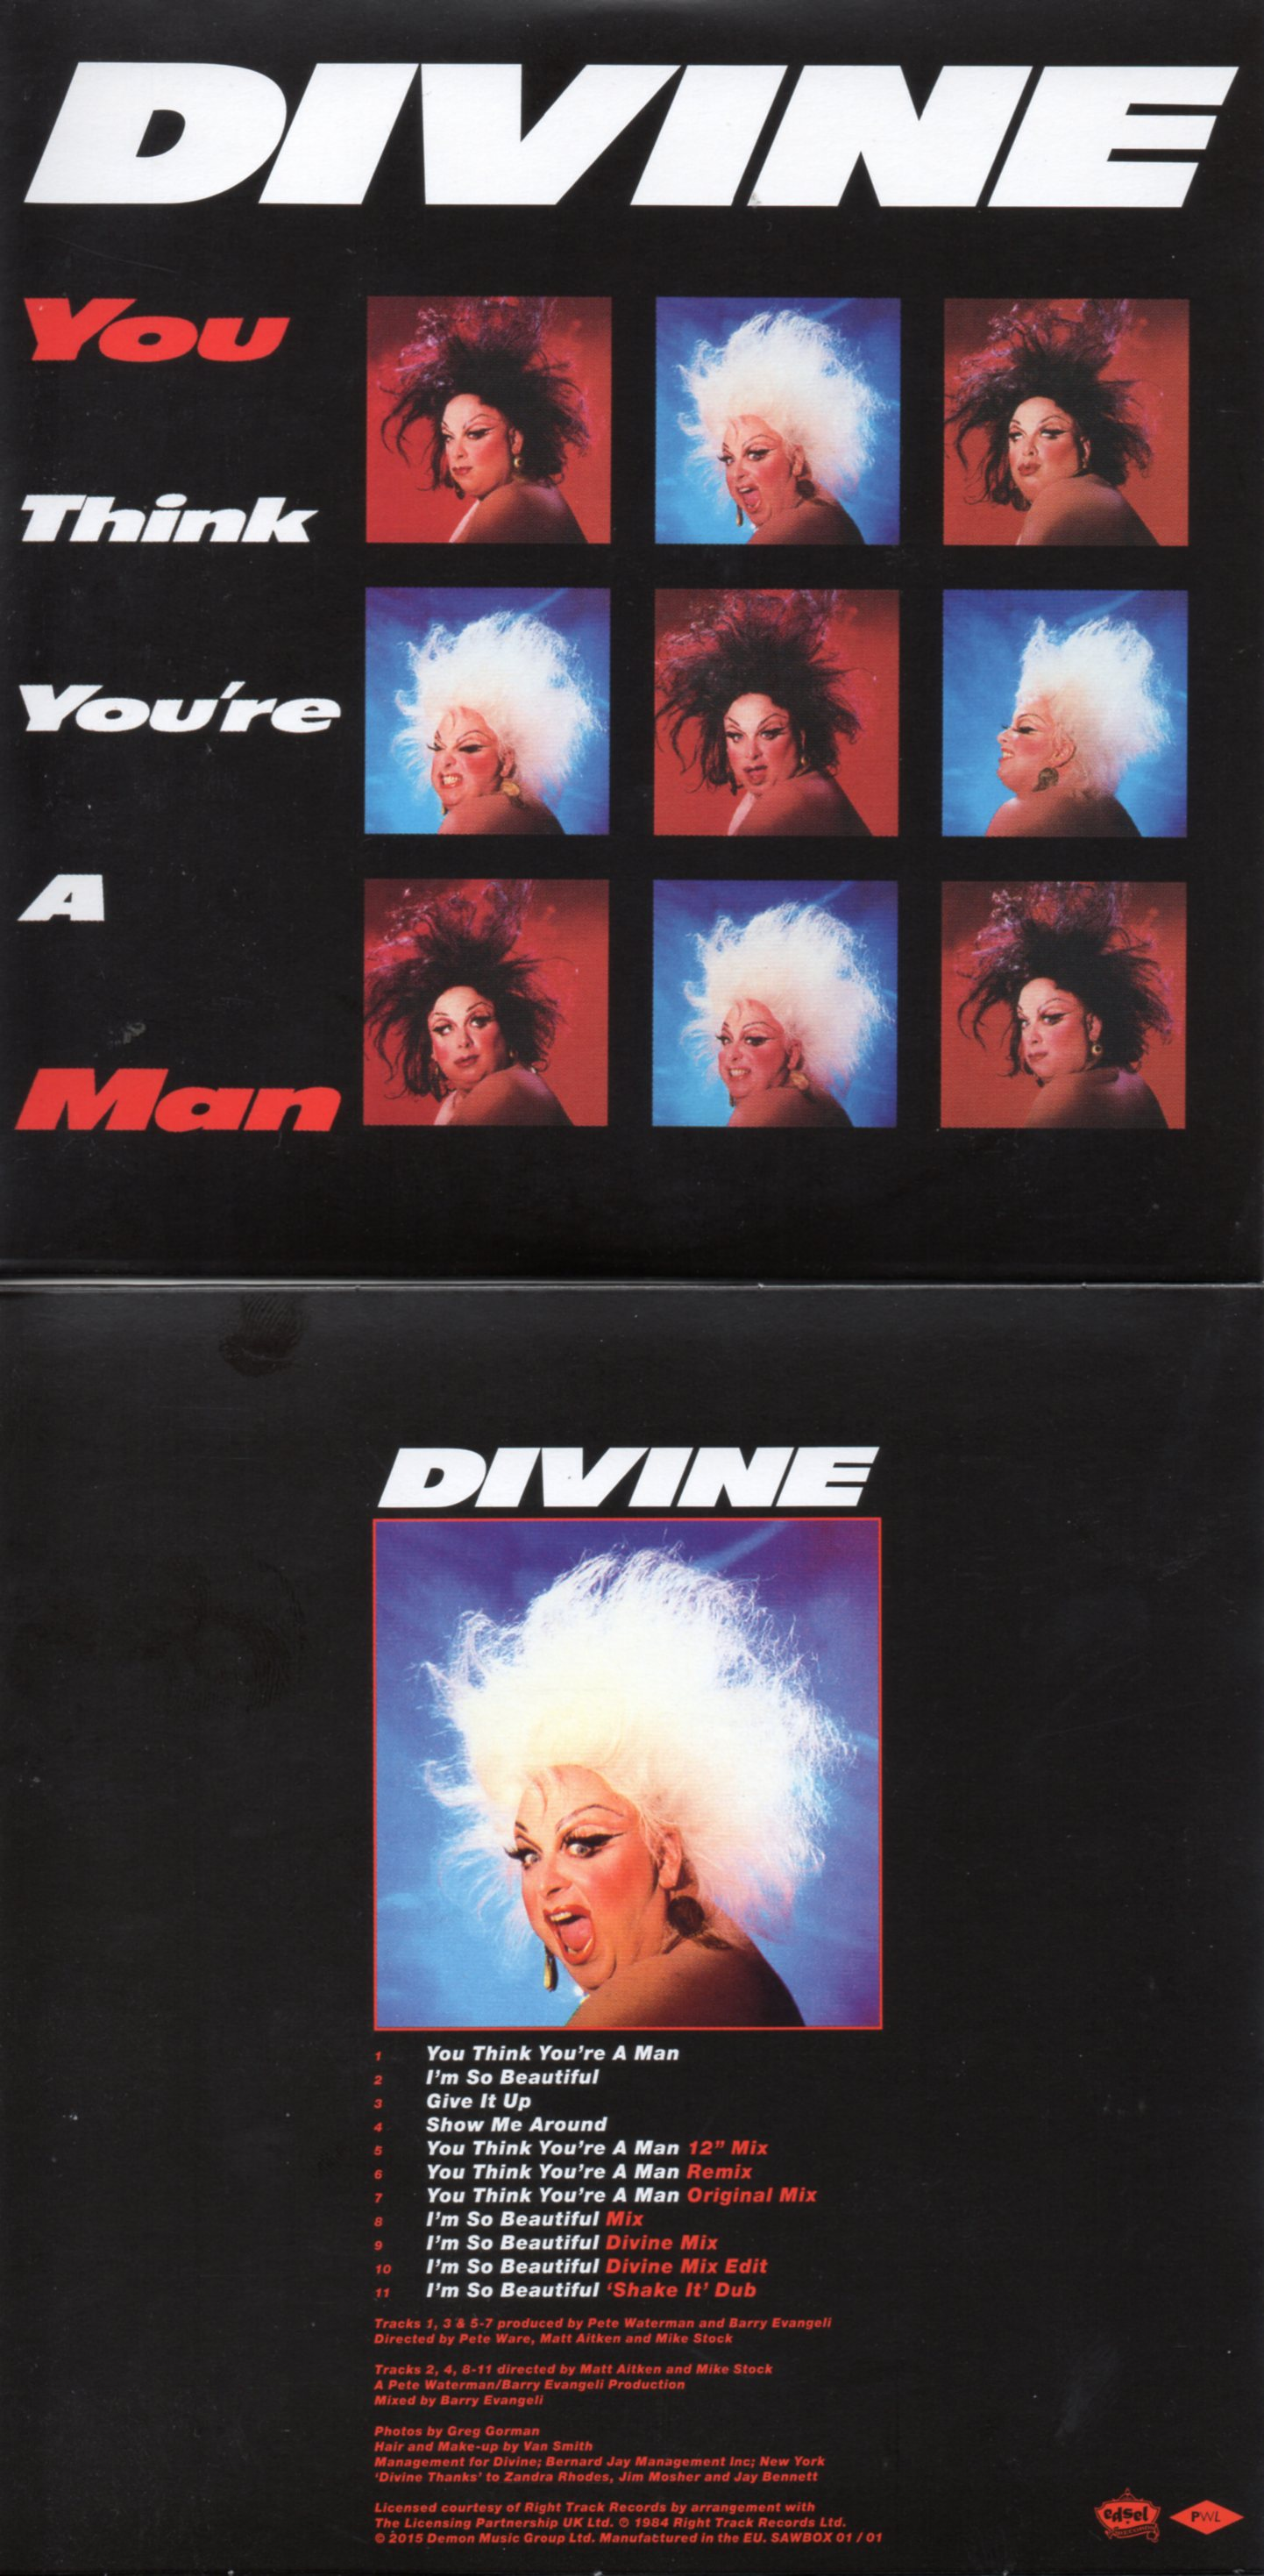 DIVINE - STOCK AITKEN WATERMAN - PWL - You Think You're A Man - I'm So Beautiful 11-track CARD SLEEVE REMIXES - CD single